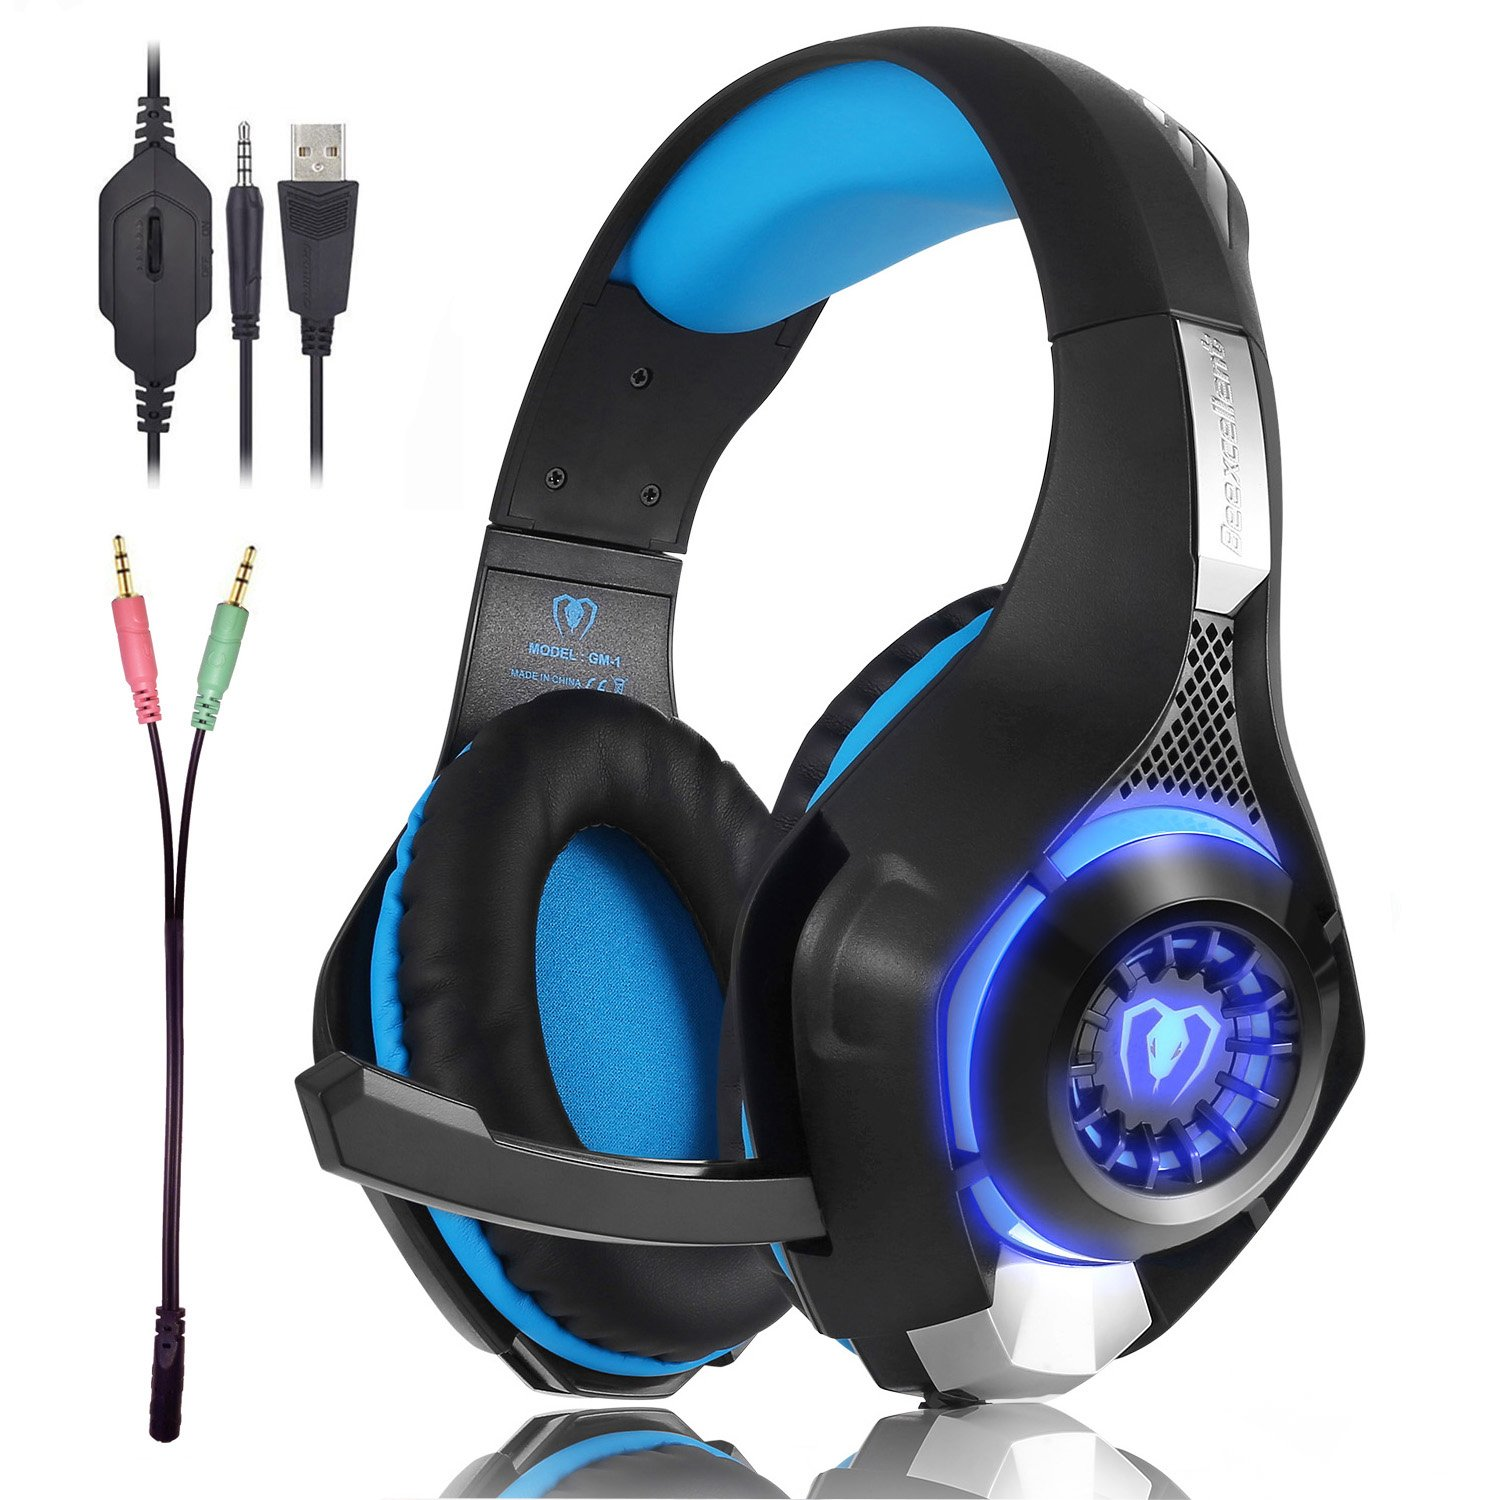 Beexcellent Gaming Headset GM-1 with Microphone for New Xbox 1 PS4 PC  Cellphone Laptops Computer - Surround Sound 5e25d8c33e